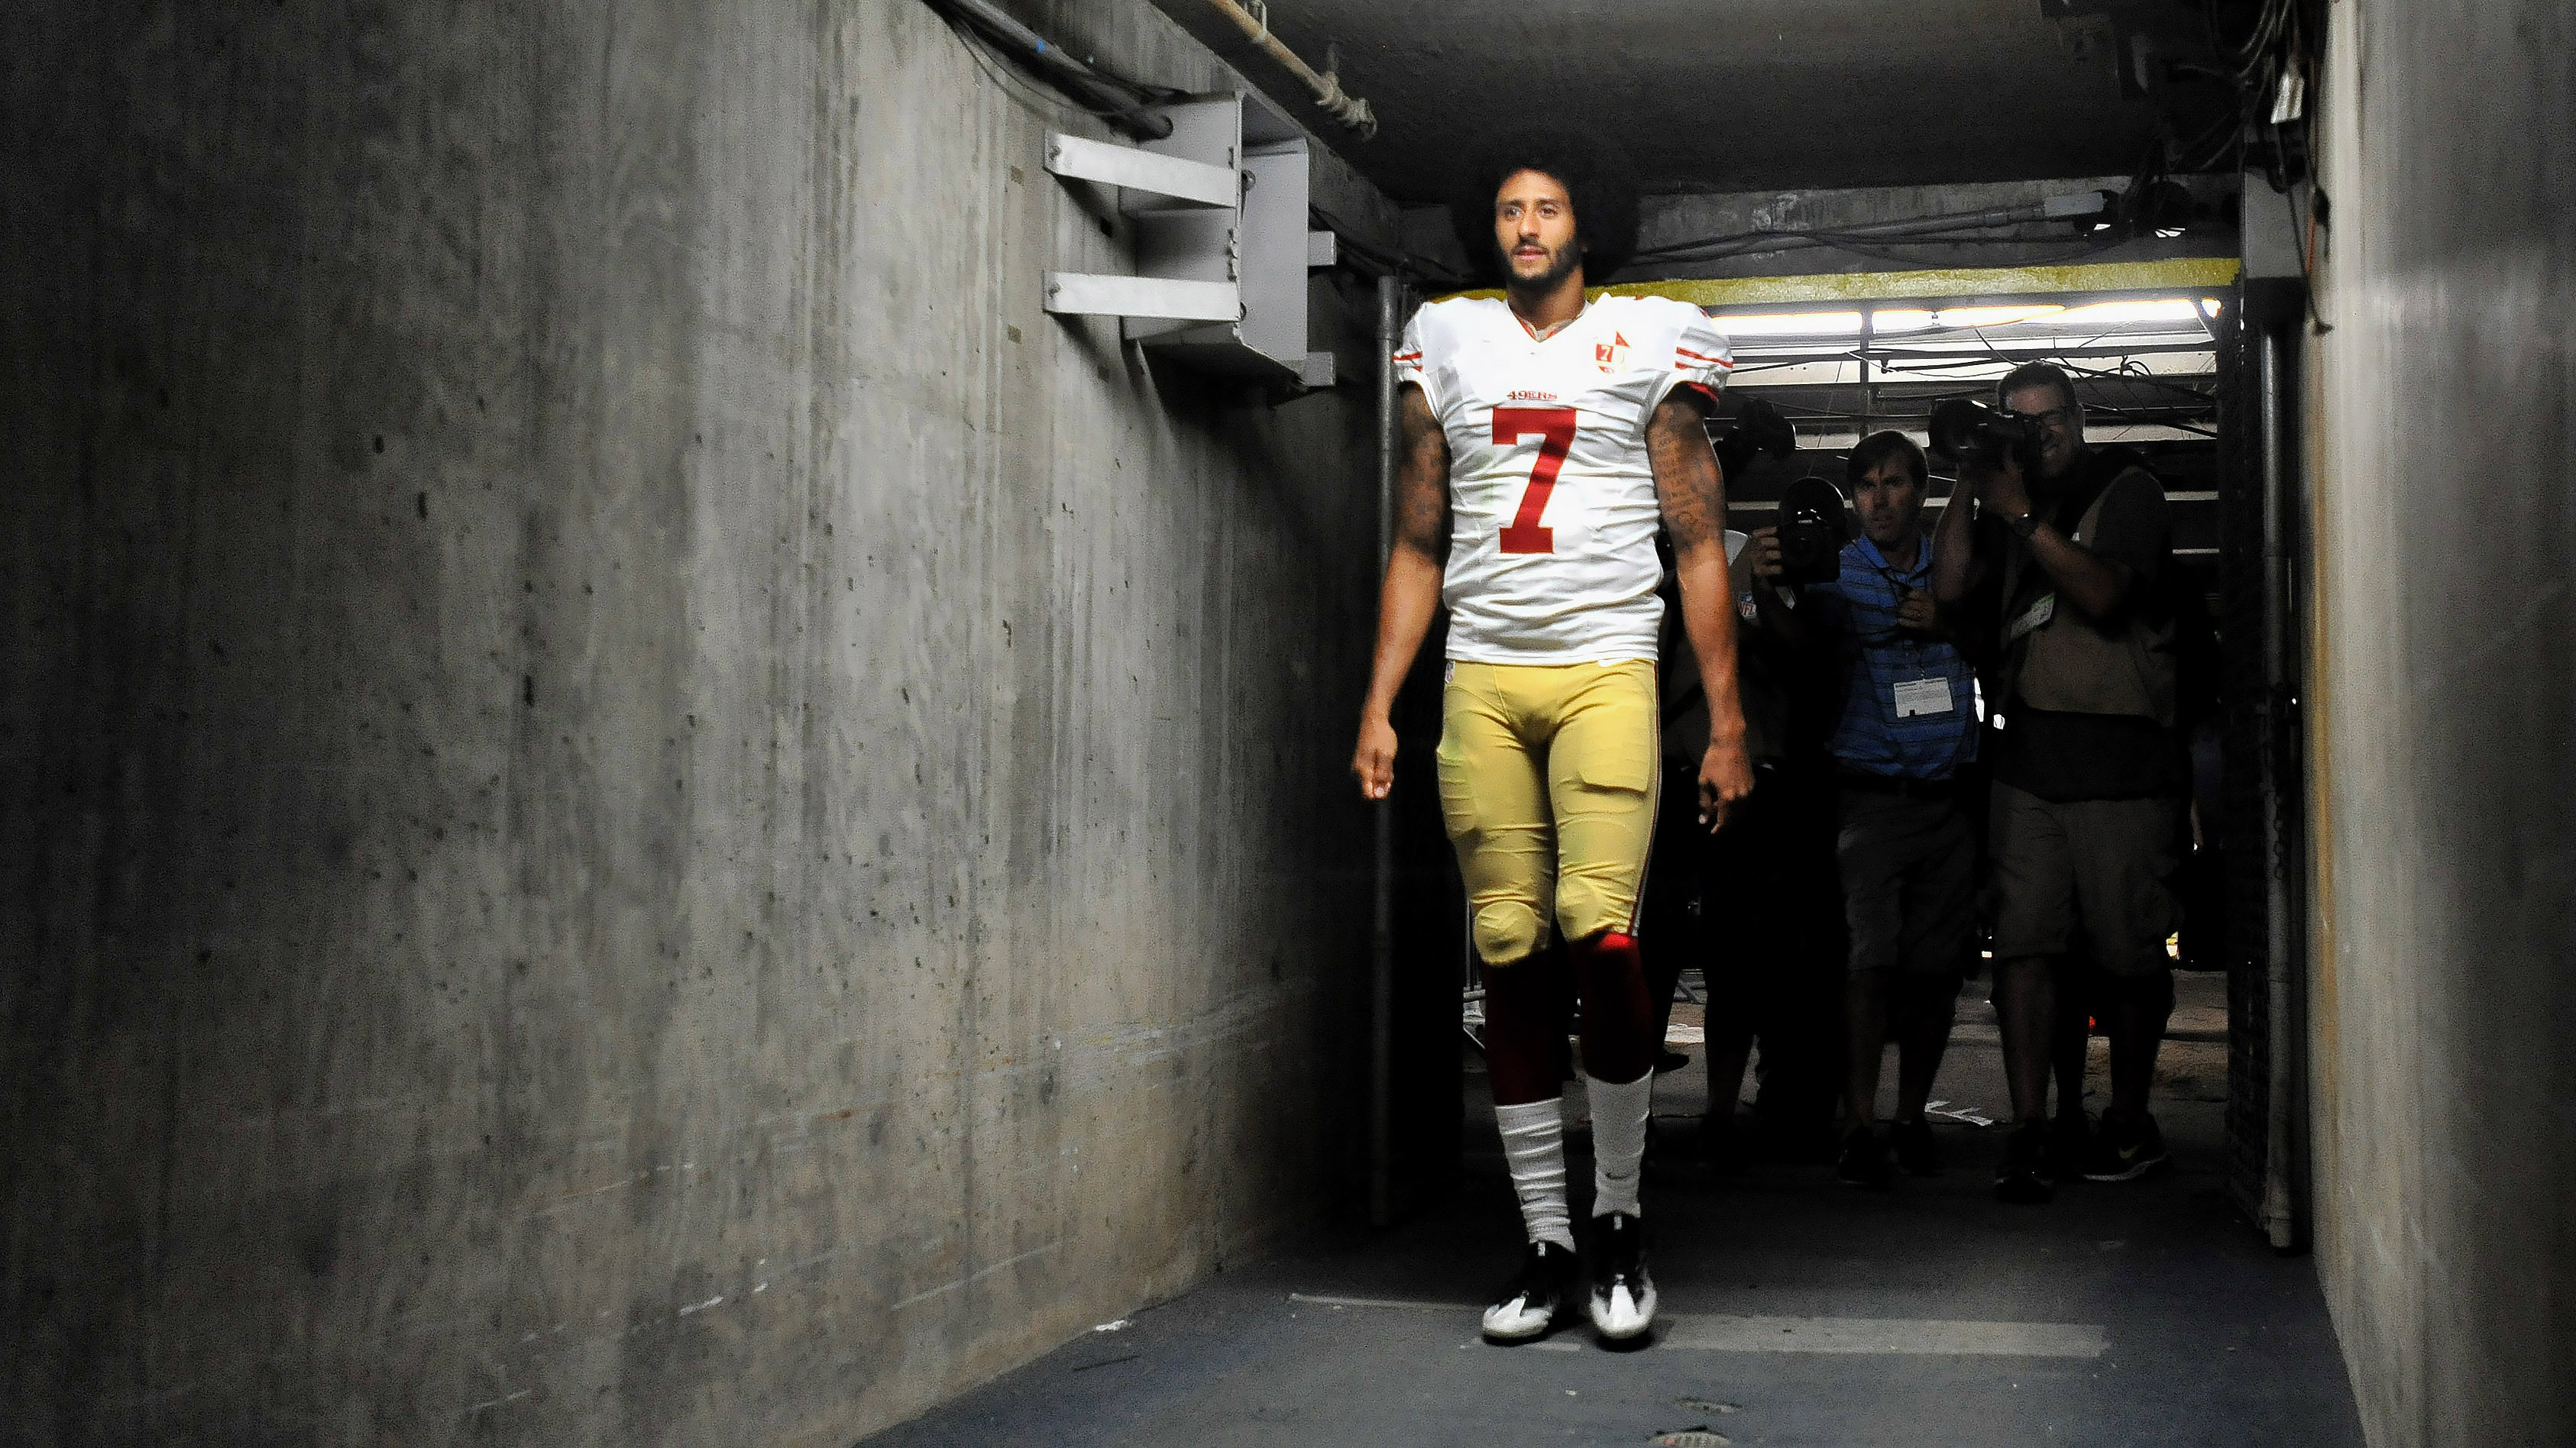 DATE IMPORTED:September 02, 2016Sep 1, 2016; San Diego, CA, USA; San Francisco 49ers quarterback Colin Kaepernick (7) walks into the tunnel after the game against the San Diego Chargers at Qualcomm Stadium. San Francisco won 31-21.